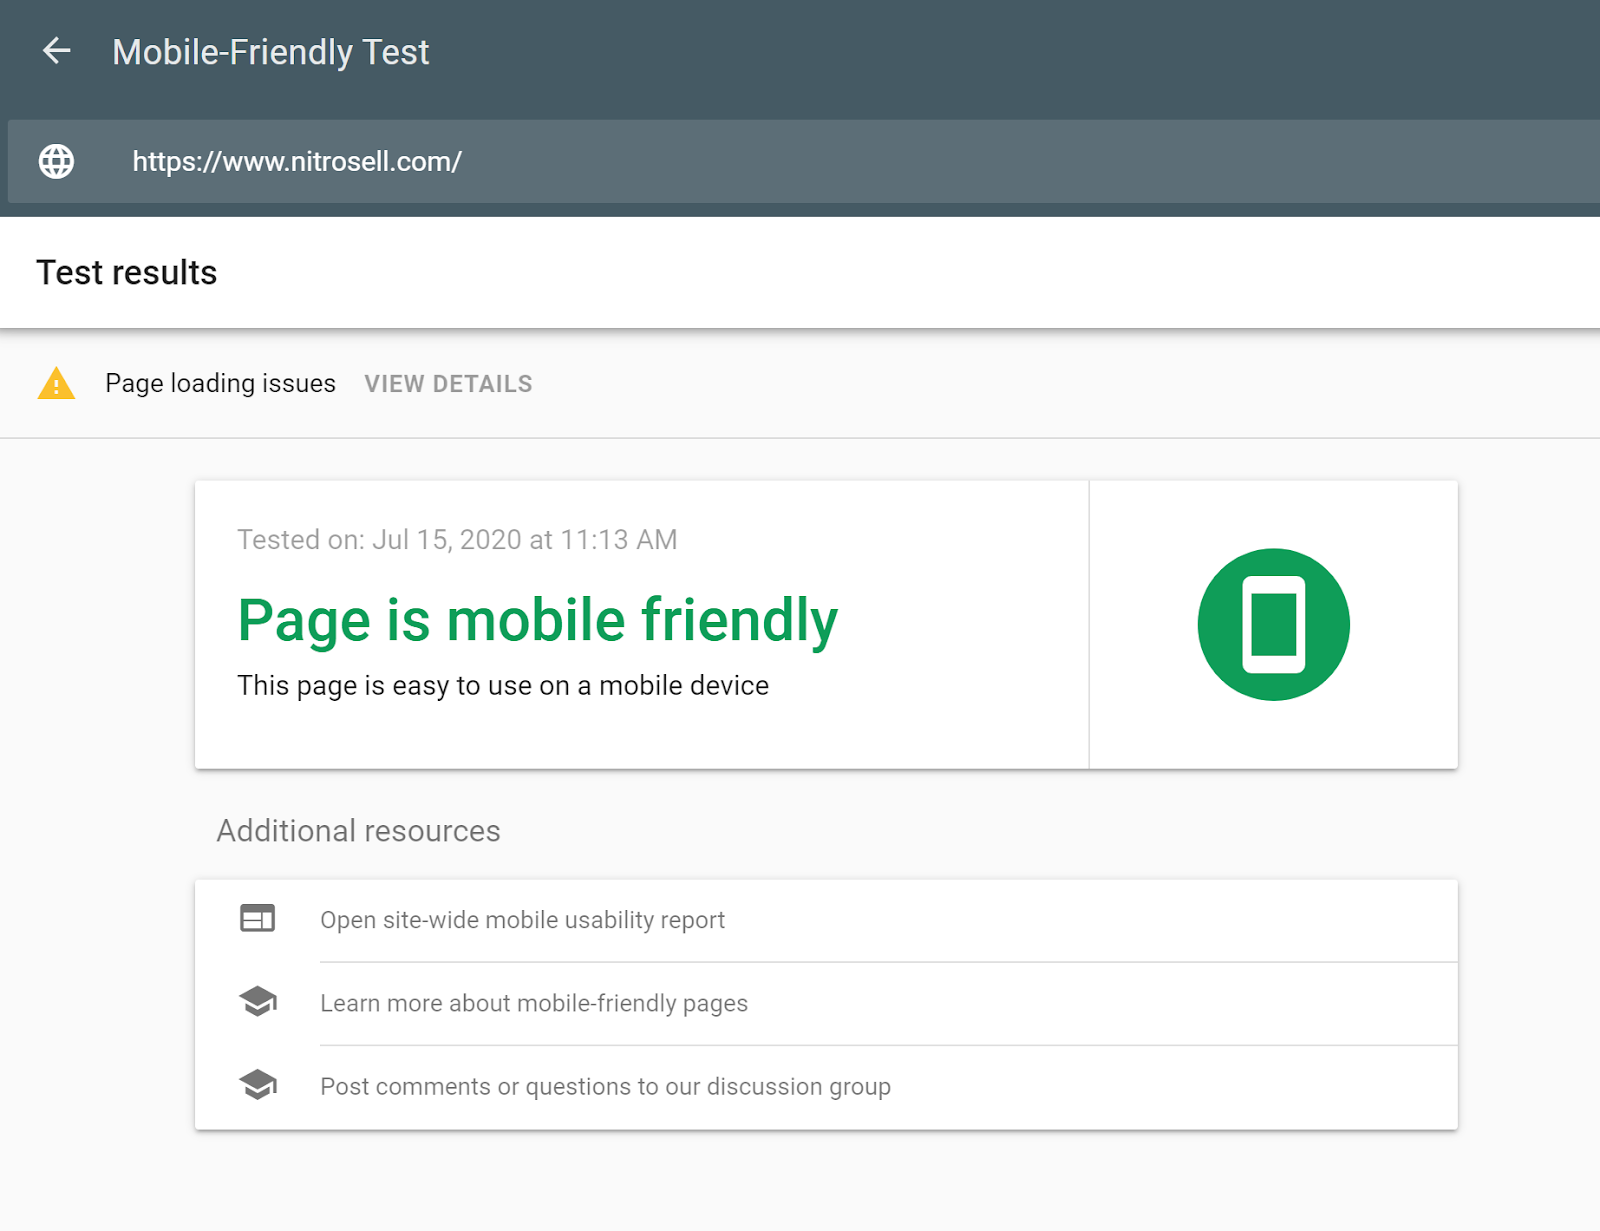 """Screenshot of a Mobile-Friendly Test results page showing a message which says: """"Page is mobile friendly""""."""